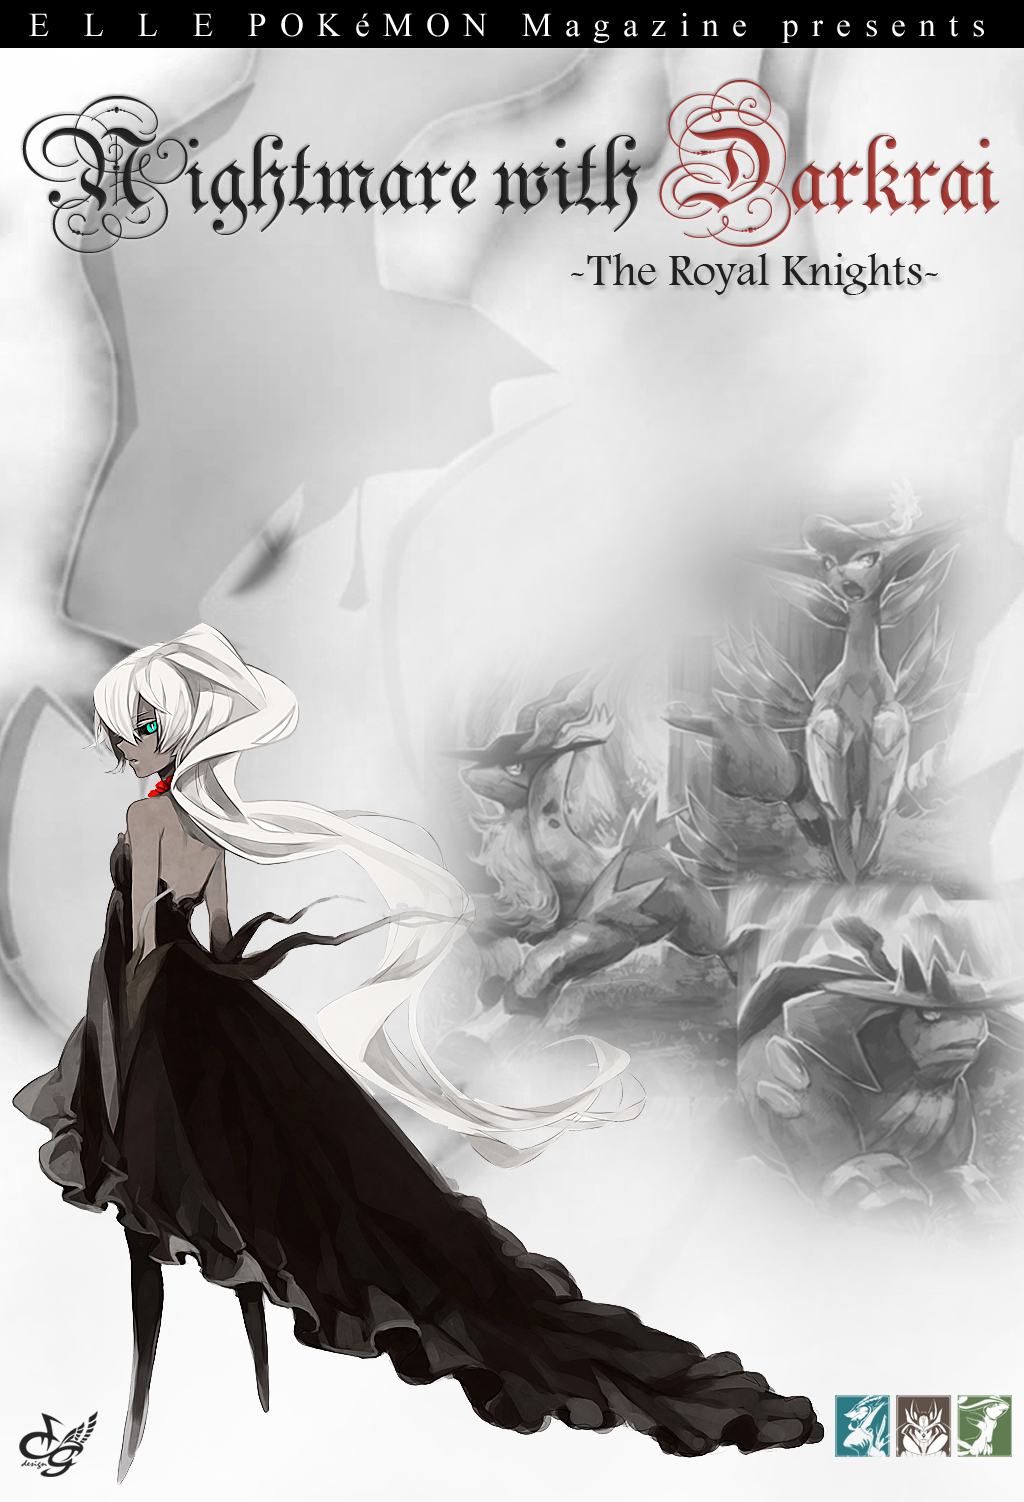 """Nightmare With Darkrai"" – The Royal Knights – : Arrogance"